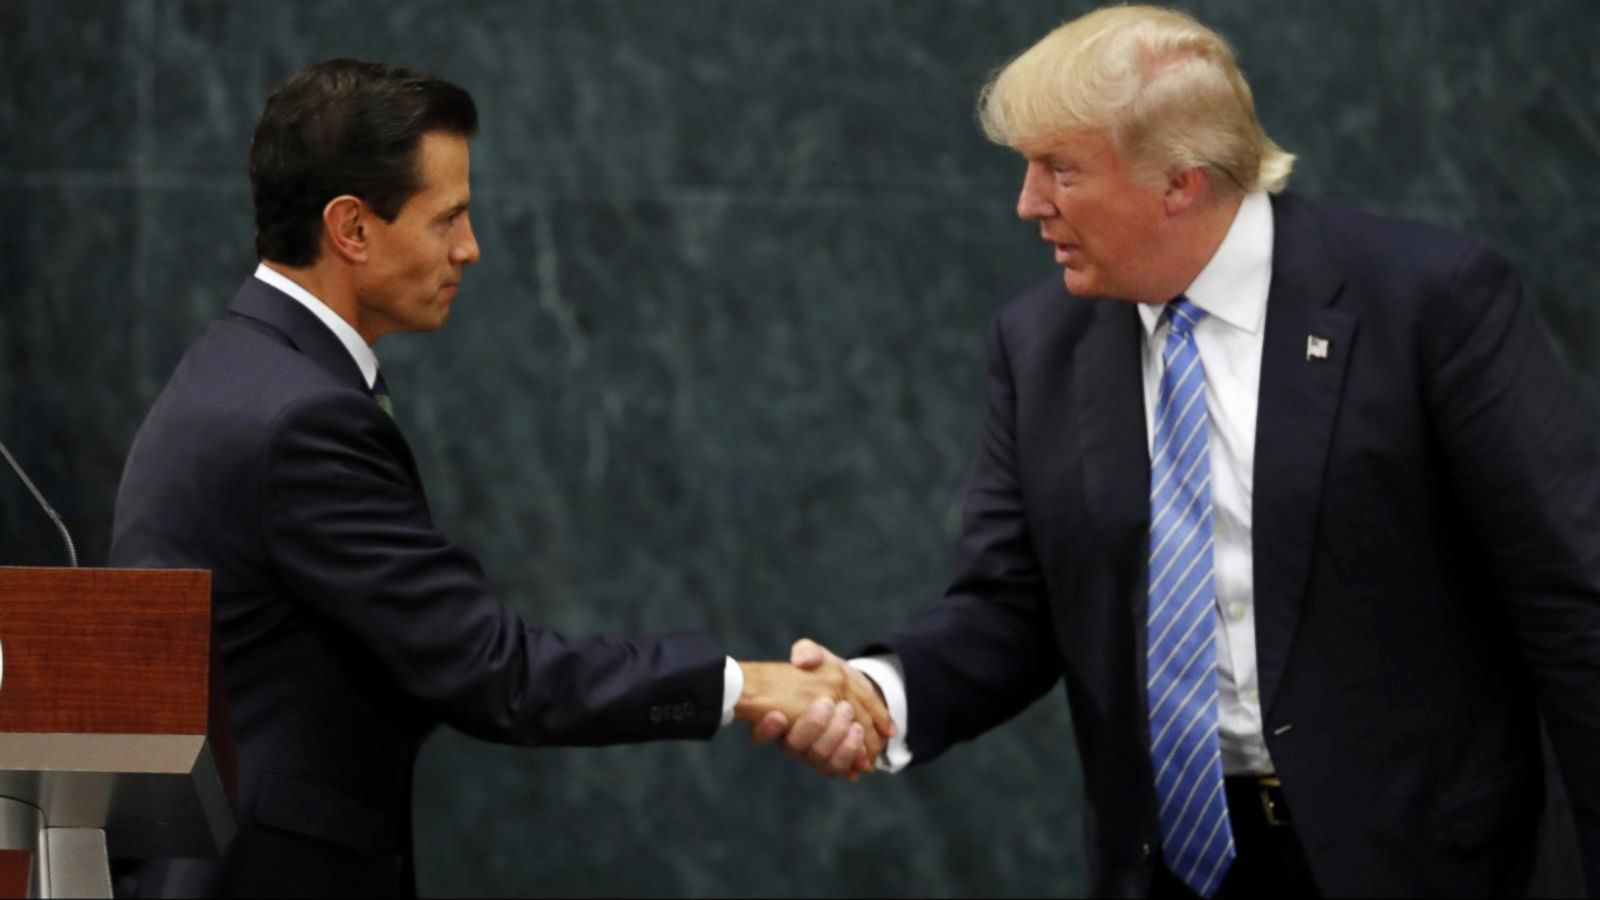 VIDEO: Donald Trump Meets Mexico's President